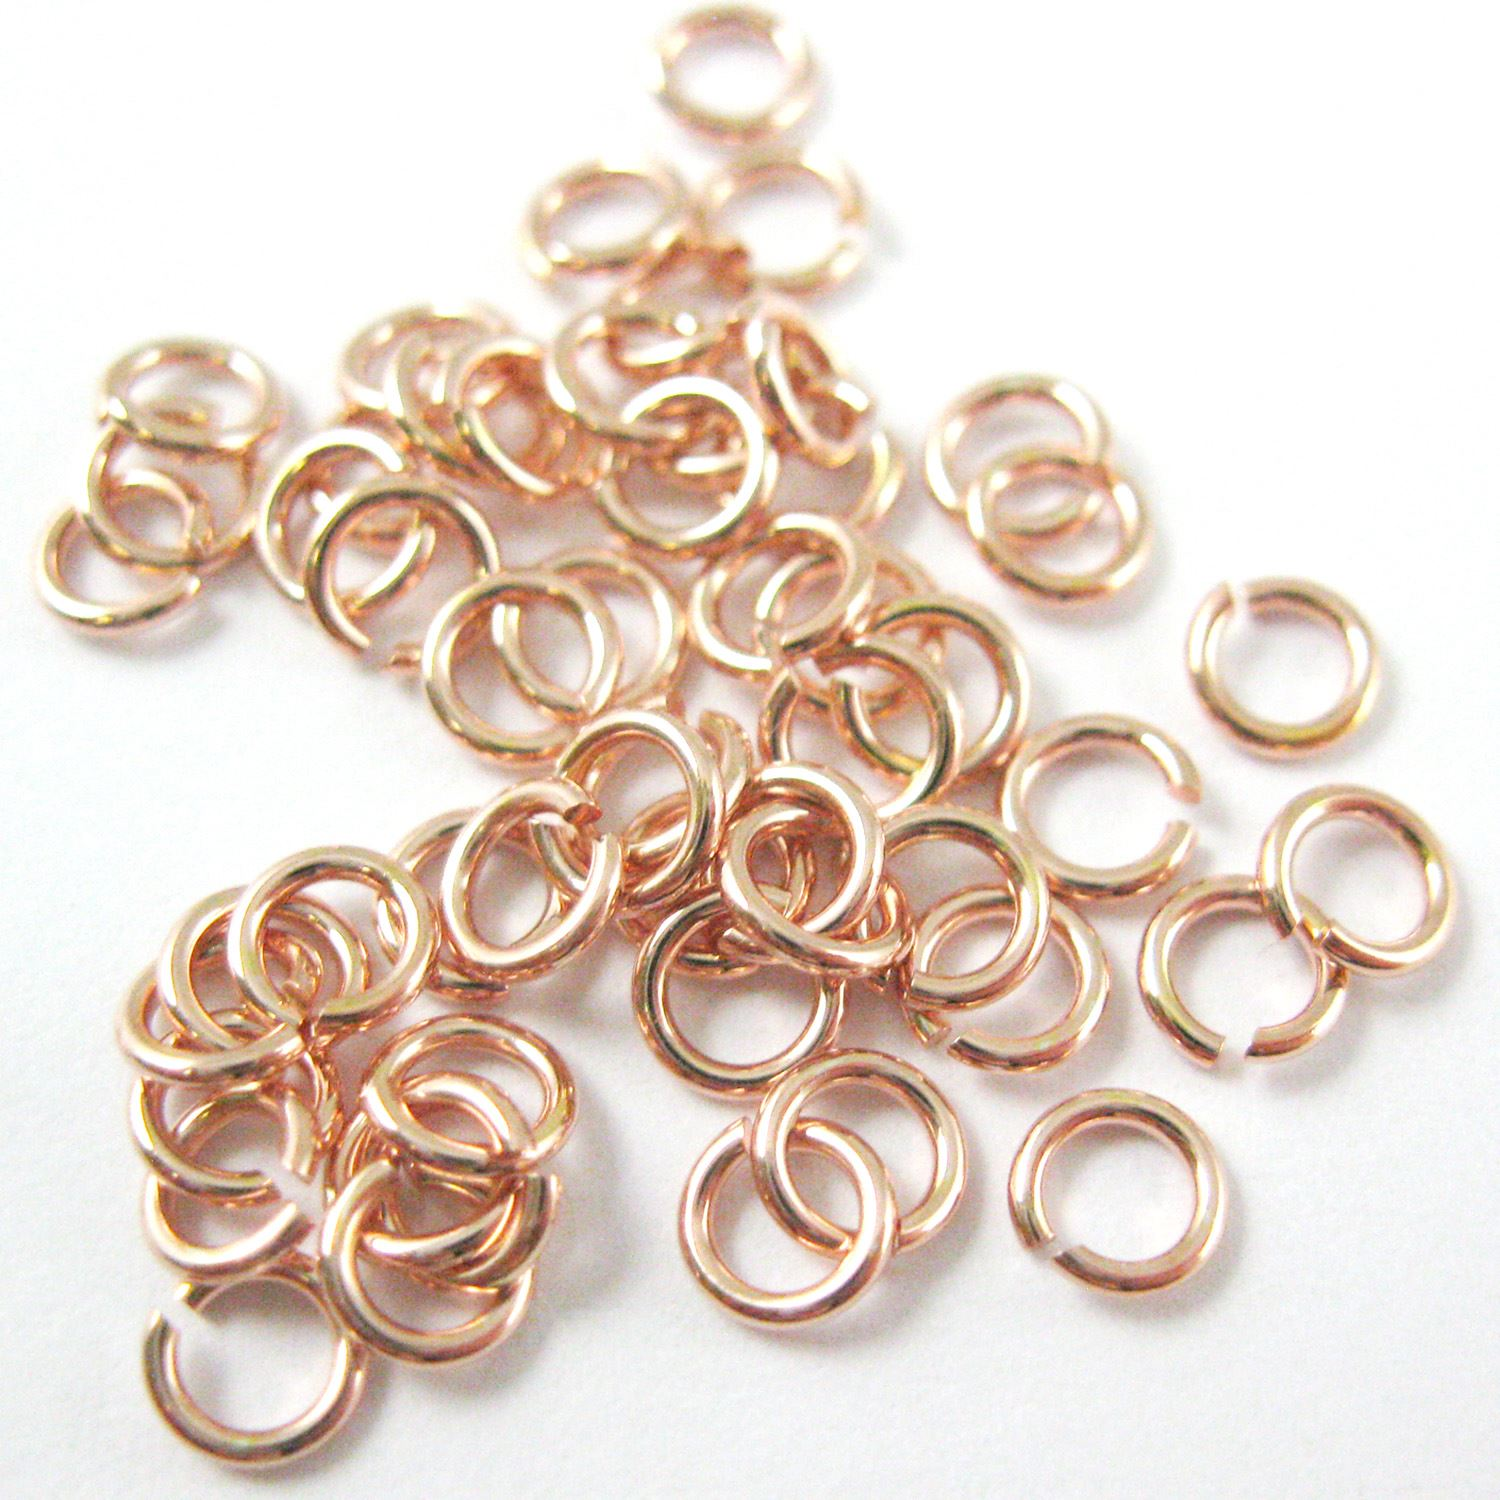 Rose Gold plated Sterling Silver Open Jump Rings,20ga,4mm (sold per pkg of 20pcs)